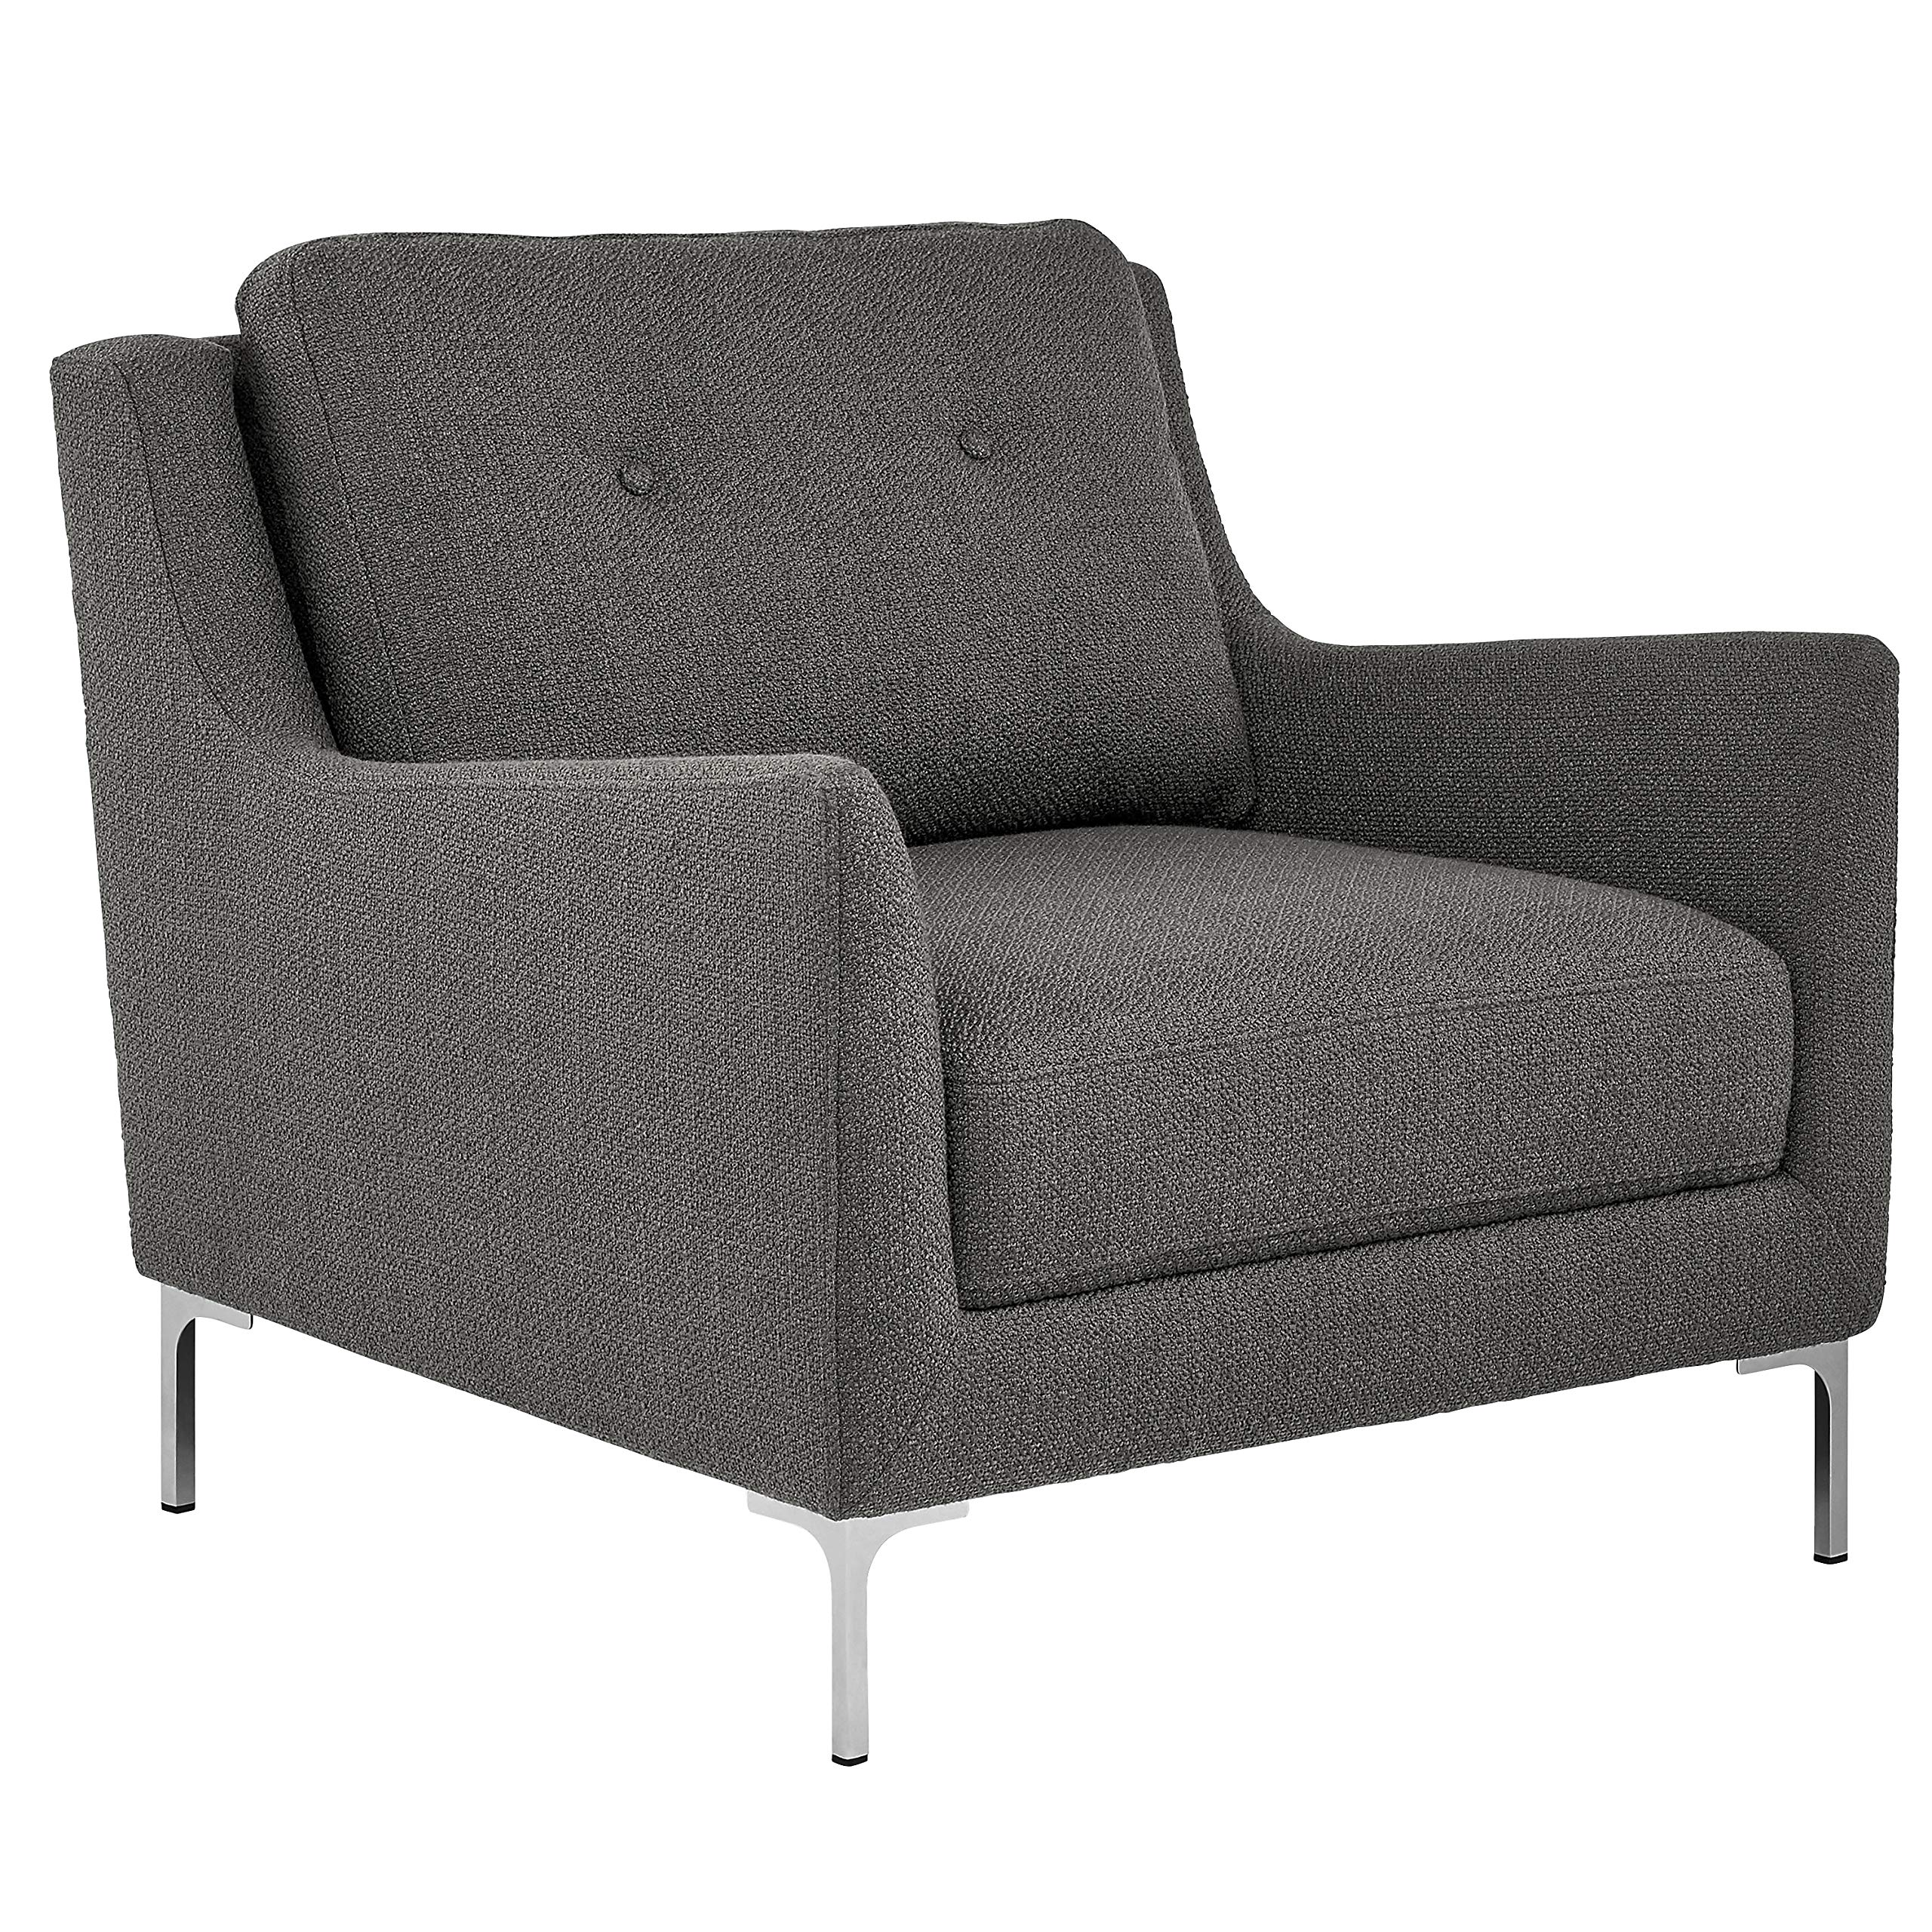 Rivet Abel Modern Contemporary Accent Chair, 32''W, Charcoal by Rivet